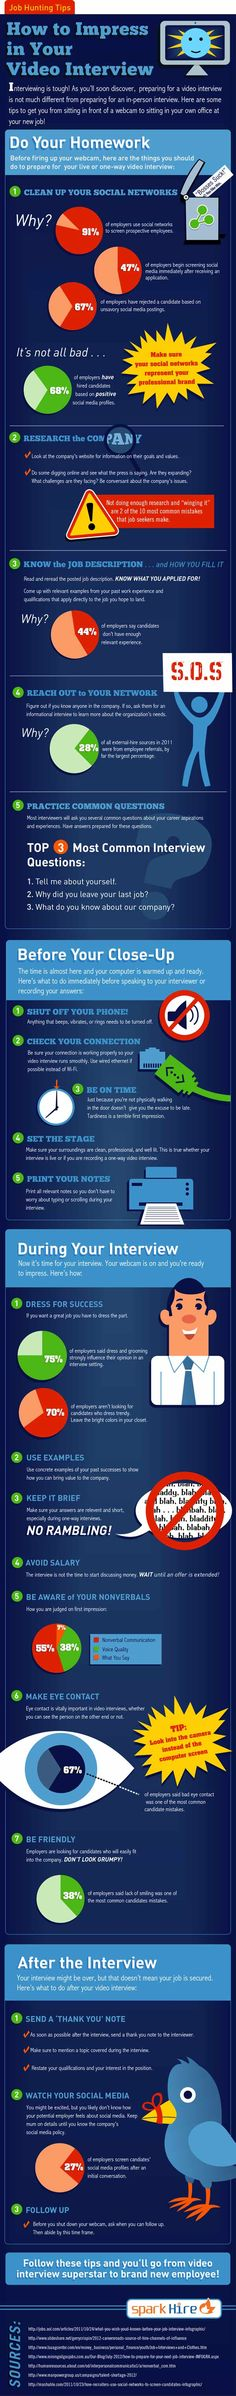 Revealed Recruitersu0027 Top Interview Tips #infographic - first interview tips